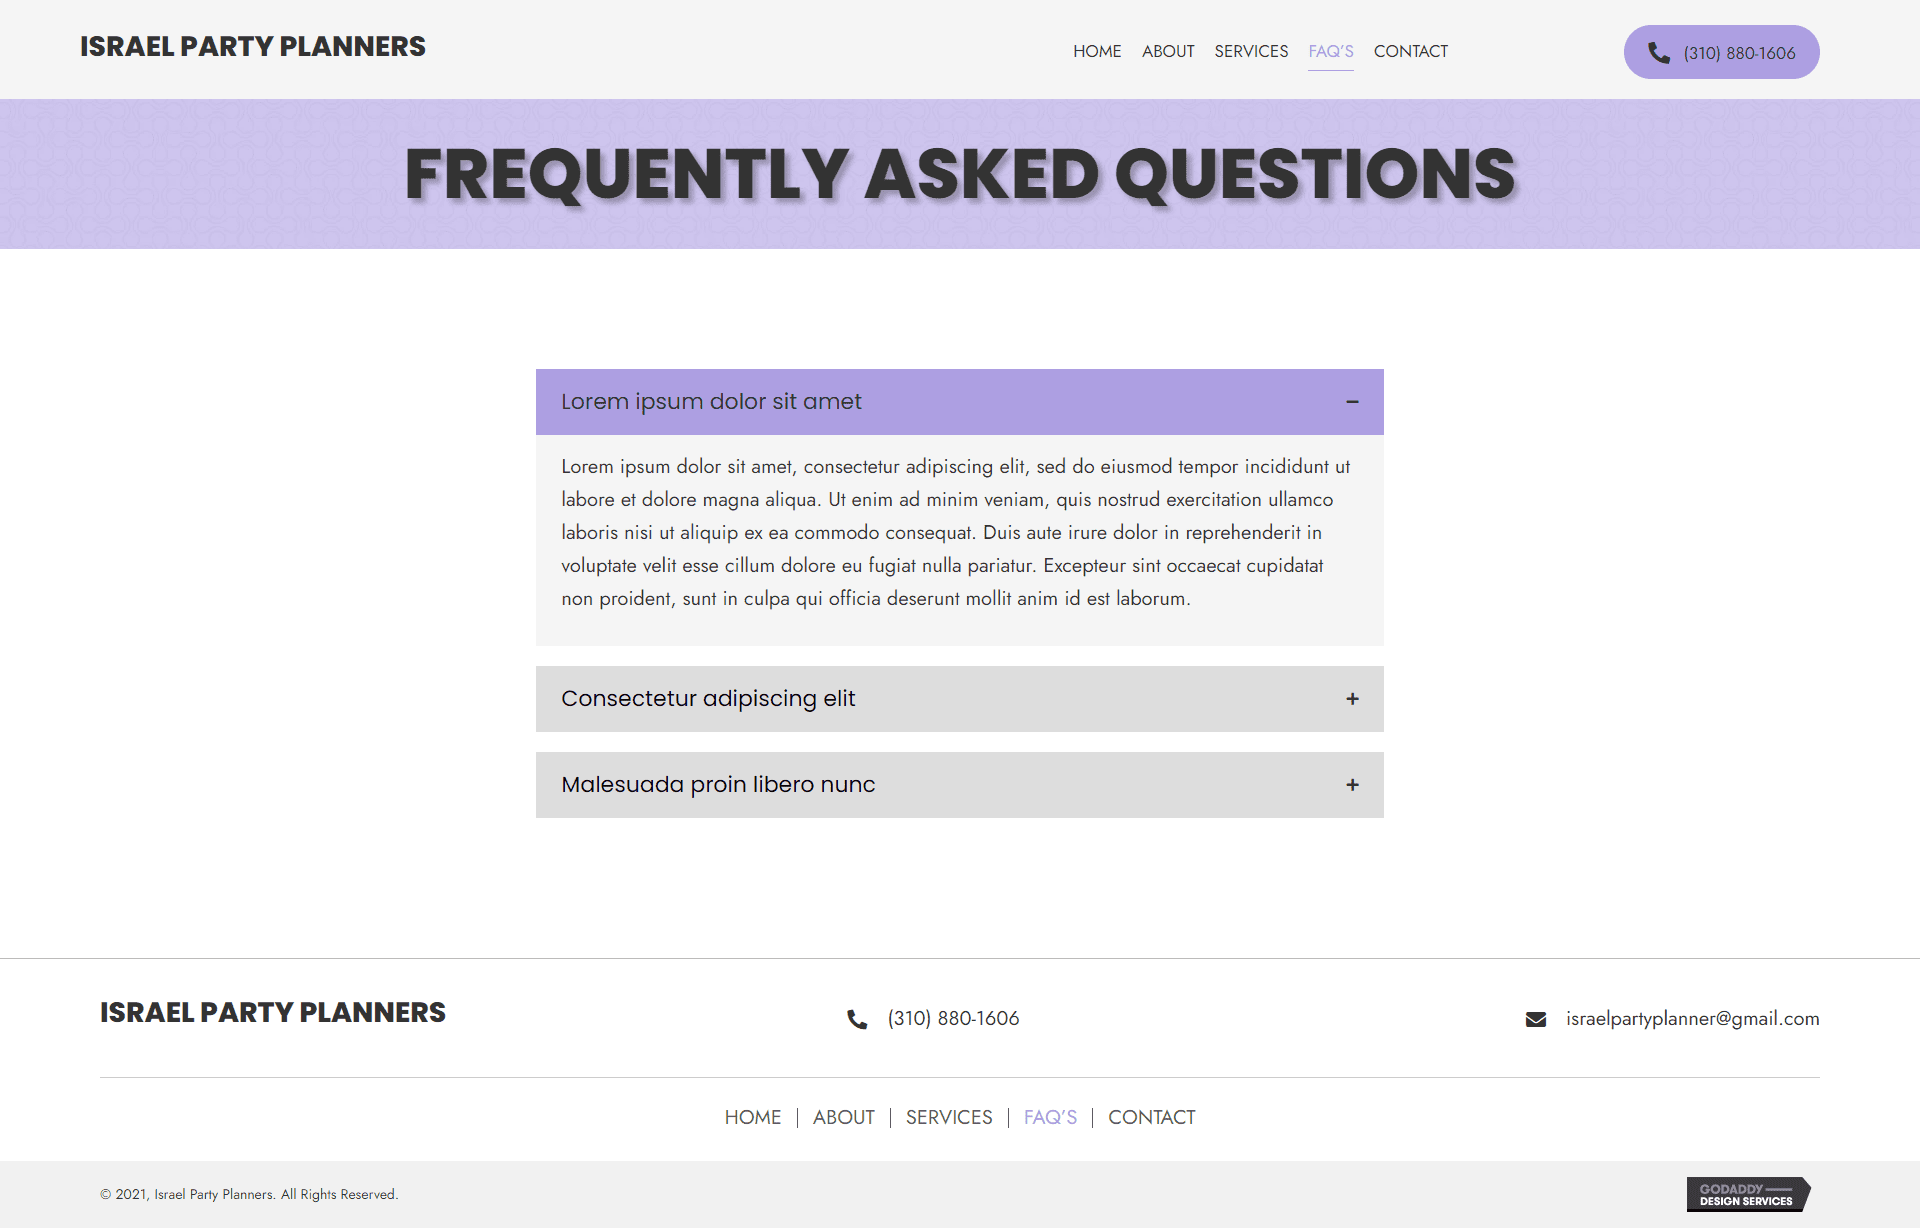 Israel Party Planners FAQ